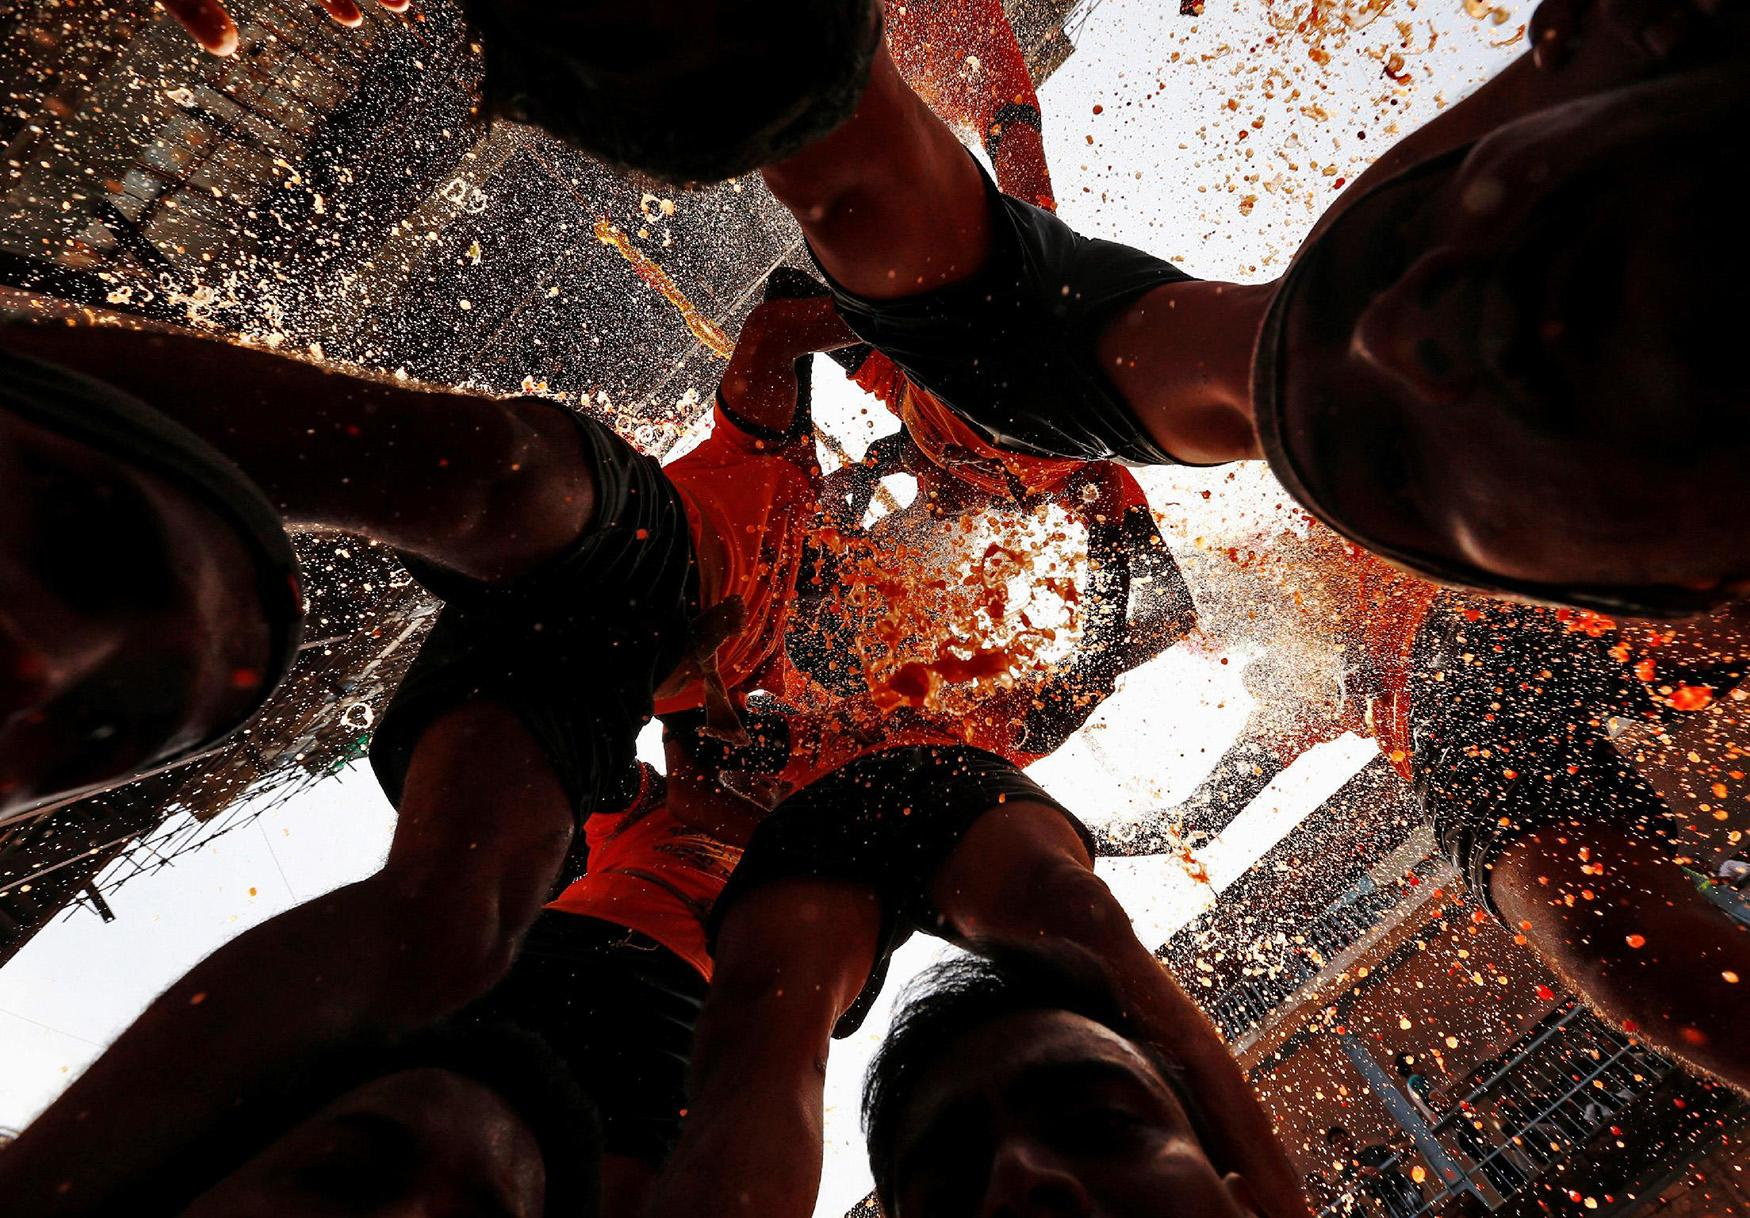 <p>A devotee breaks a clay pot containing curd as others form a human pyramid during celebrations to mark the Hindu festival of Janmashtami in Mumbai, India Aug. 25, 2016. (Photo: Danish Siddiqui/Reuters) </p>